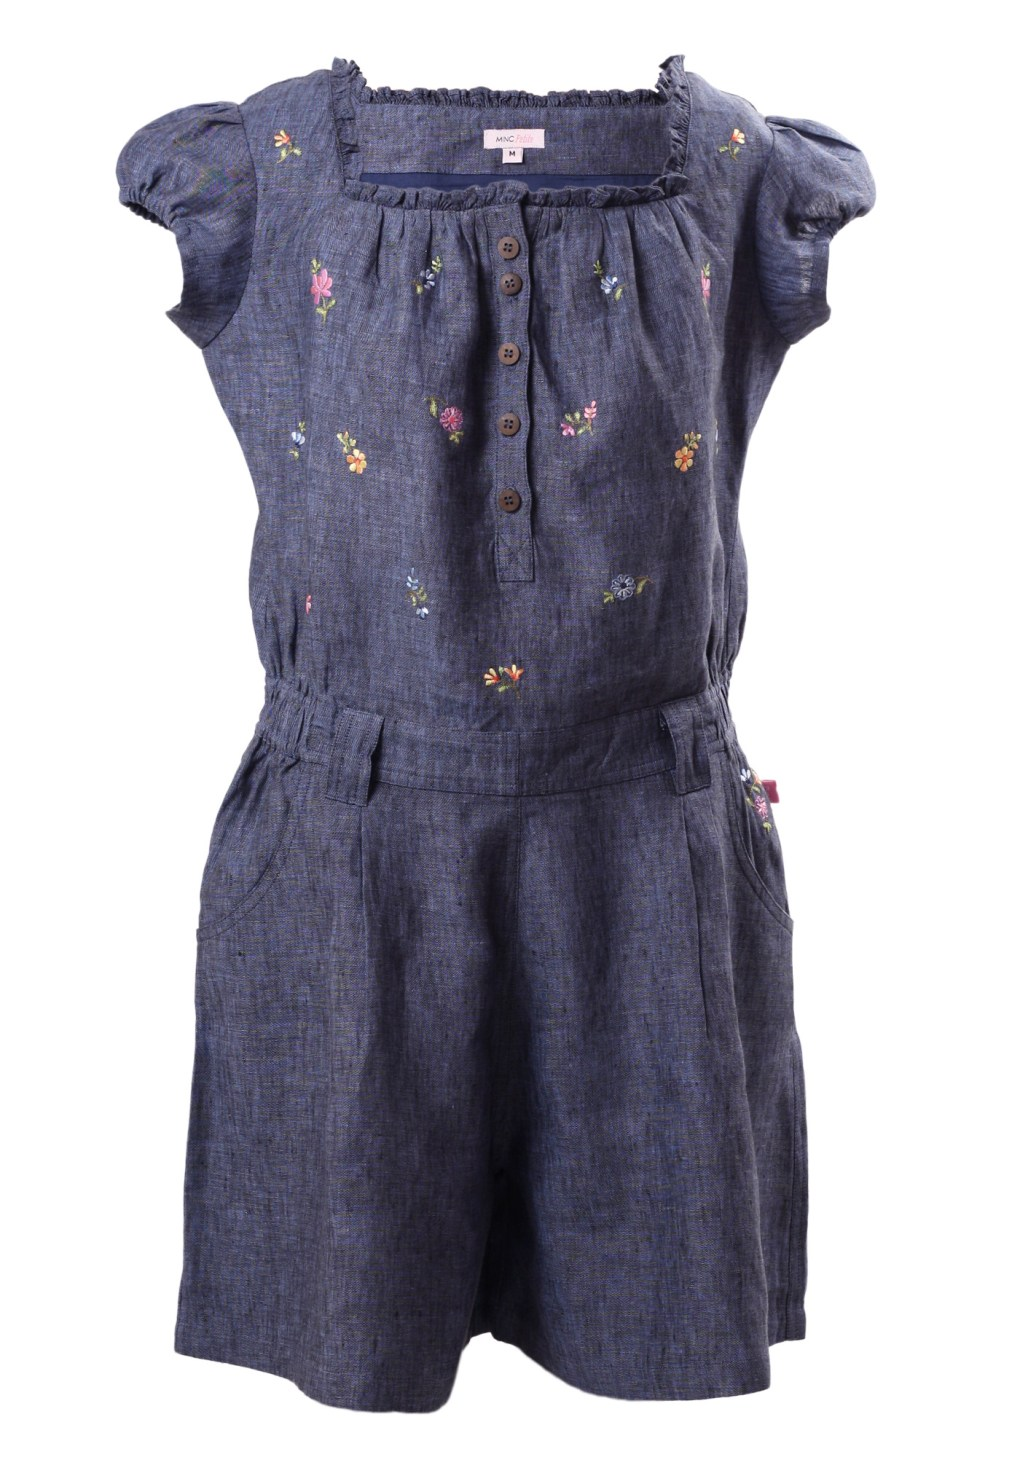 MINC Petite Bluebell Girls Embroidered Jumpsuit in Dark Blue Linen